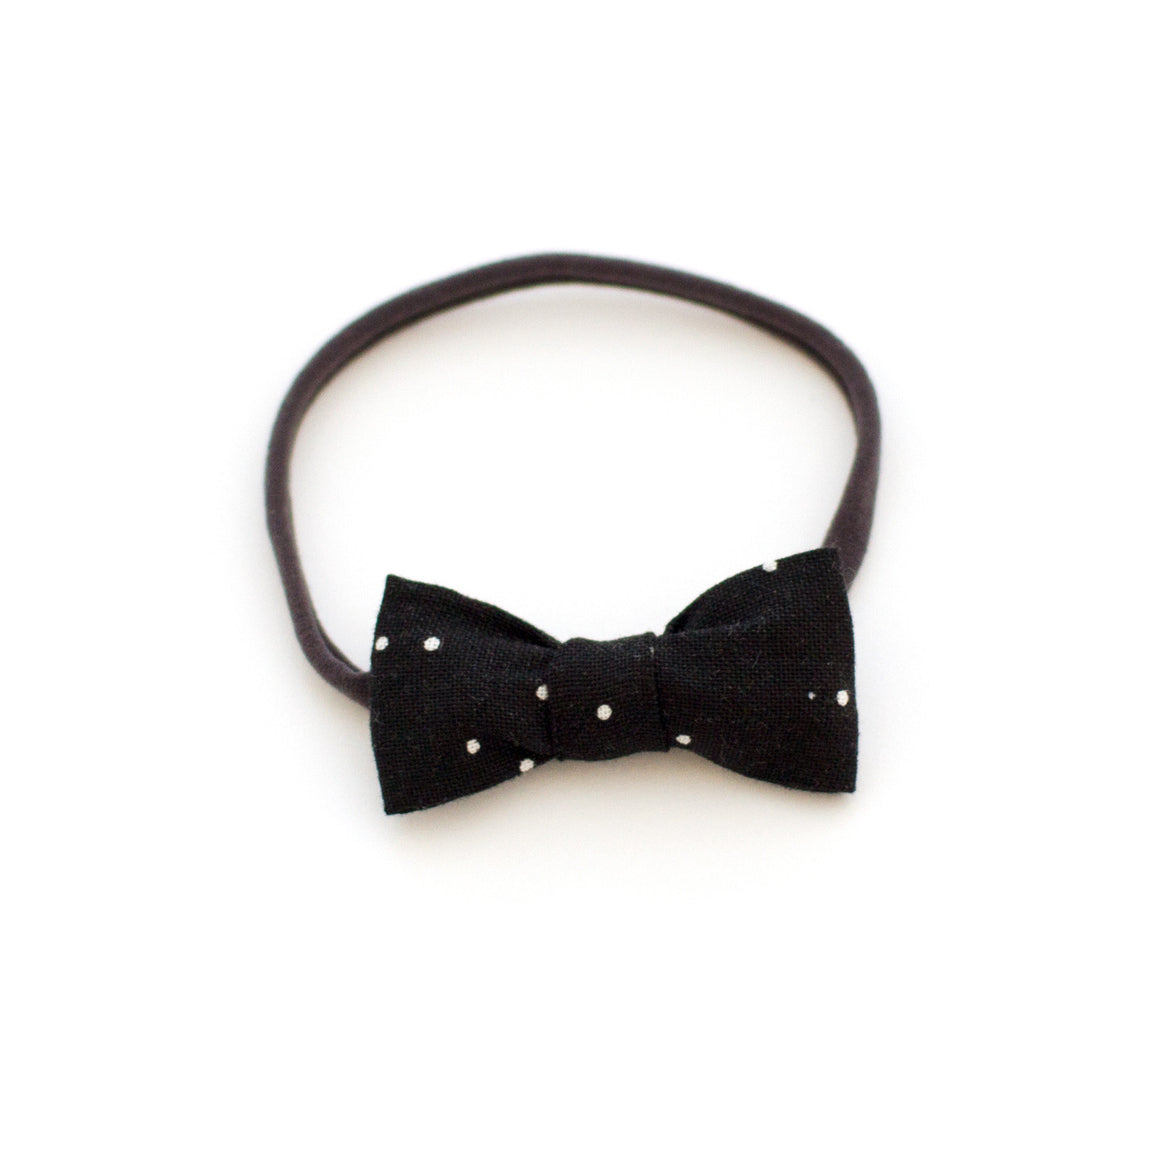 black polka dot baby headband - dark color simple and easy